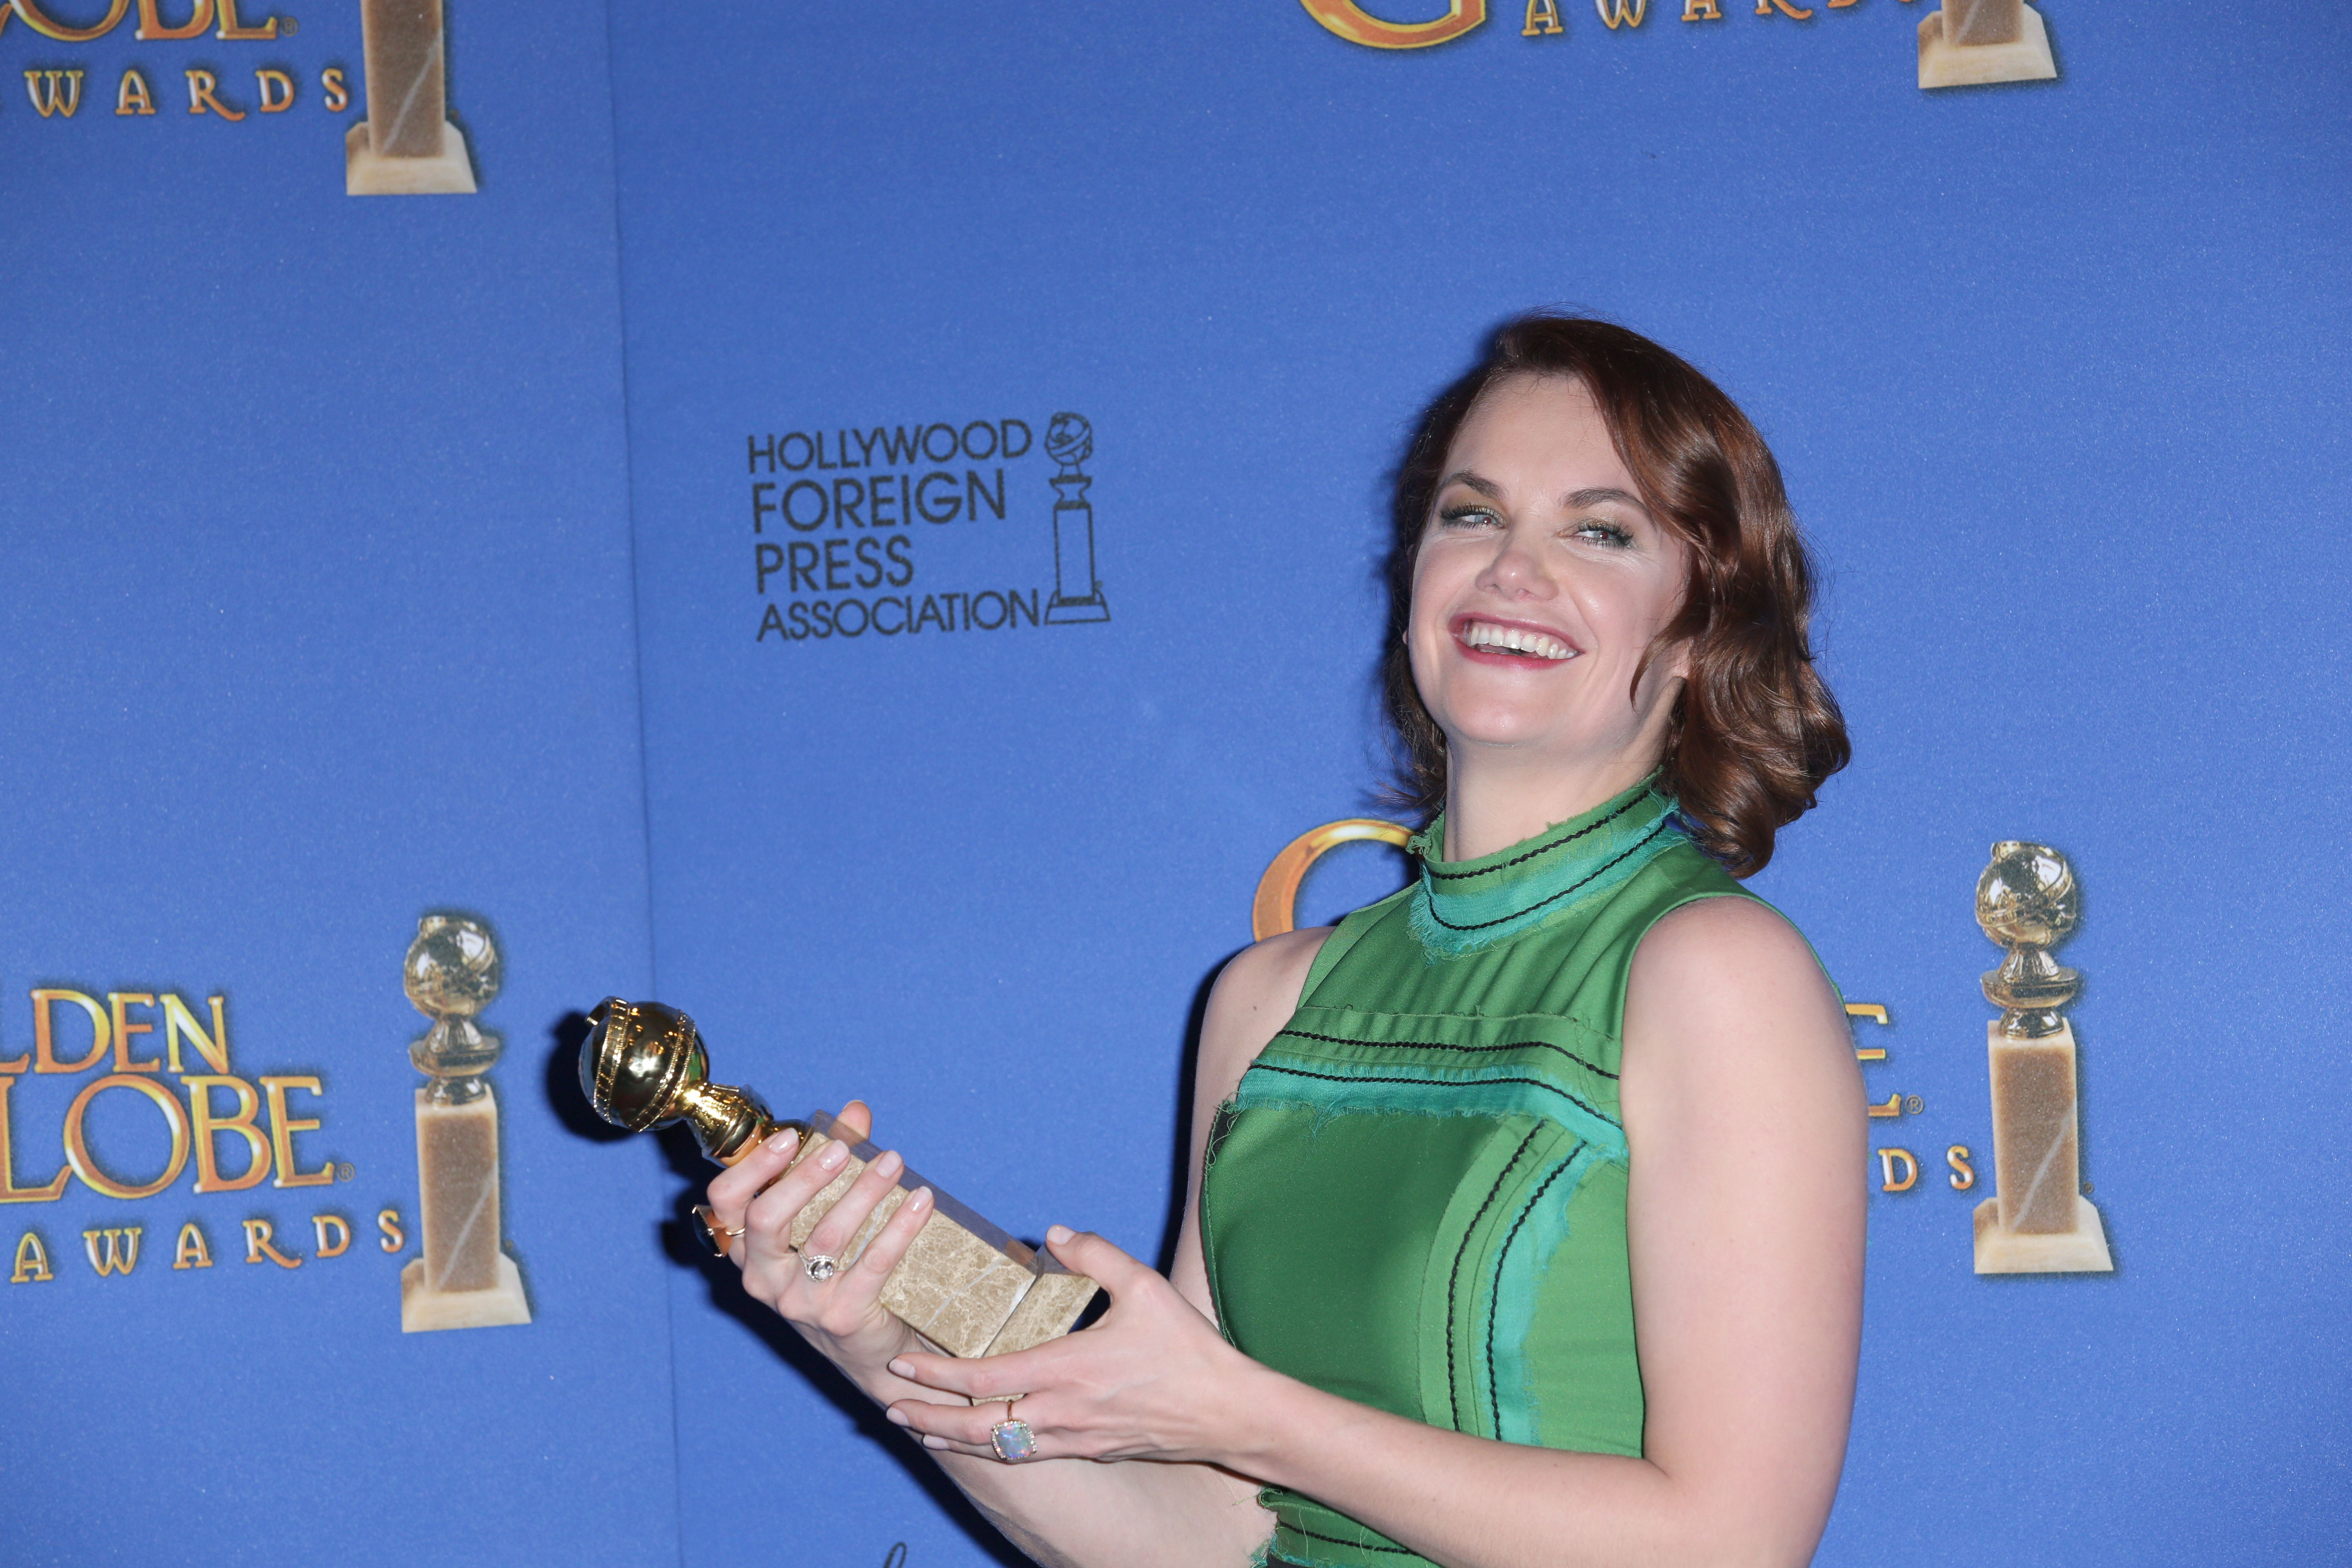 72nd Annual Golden Globe Awards, Press Room, Los Angeles, America - 11 Jan 2015